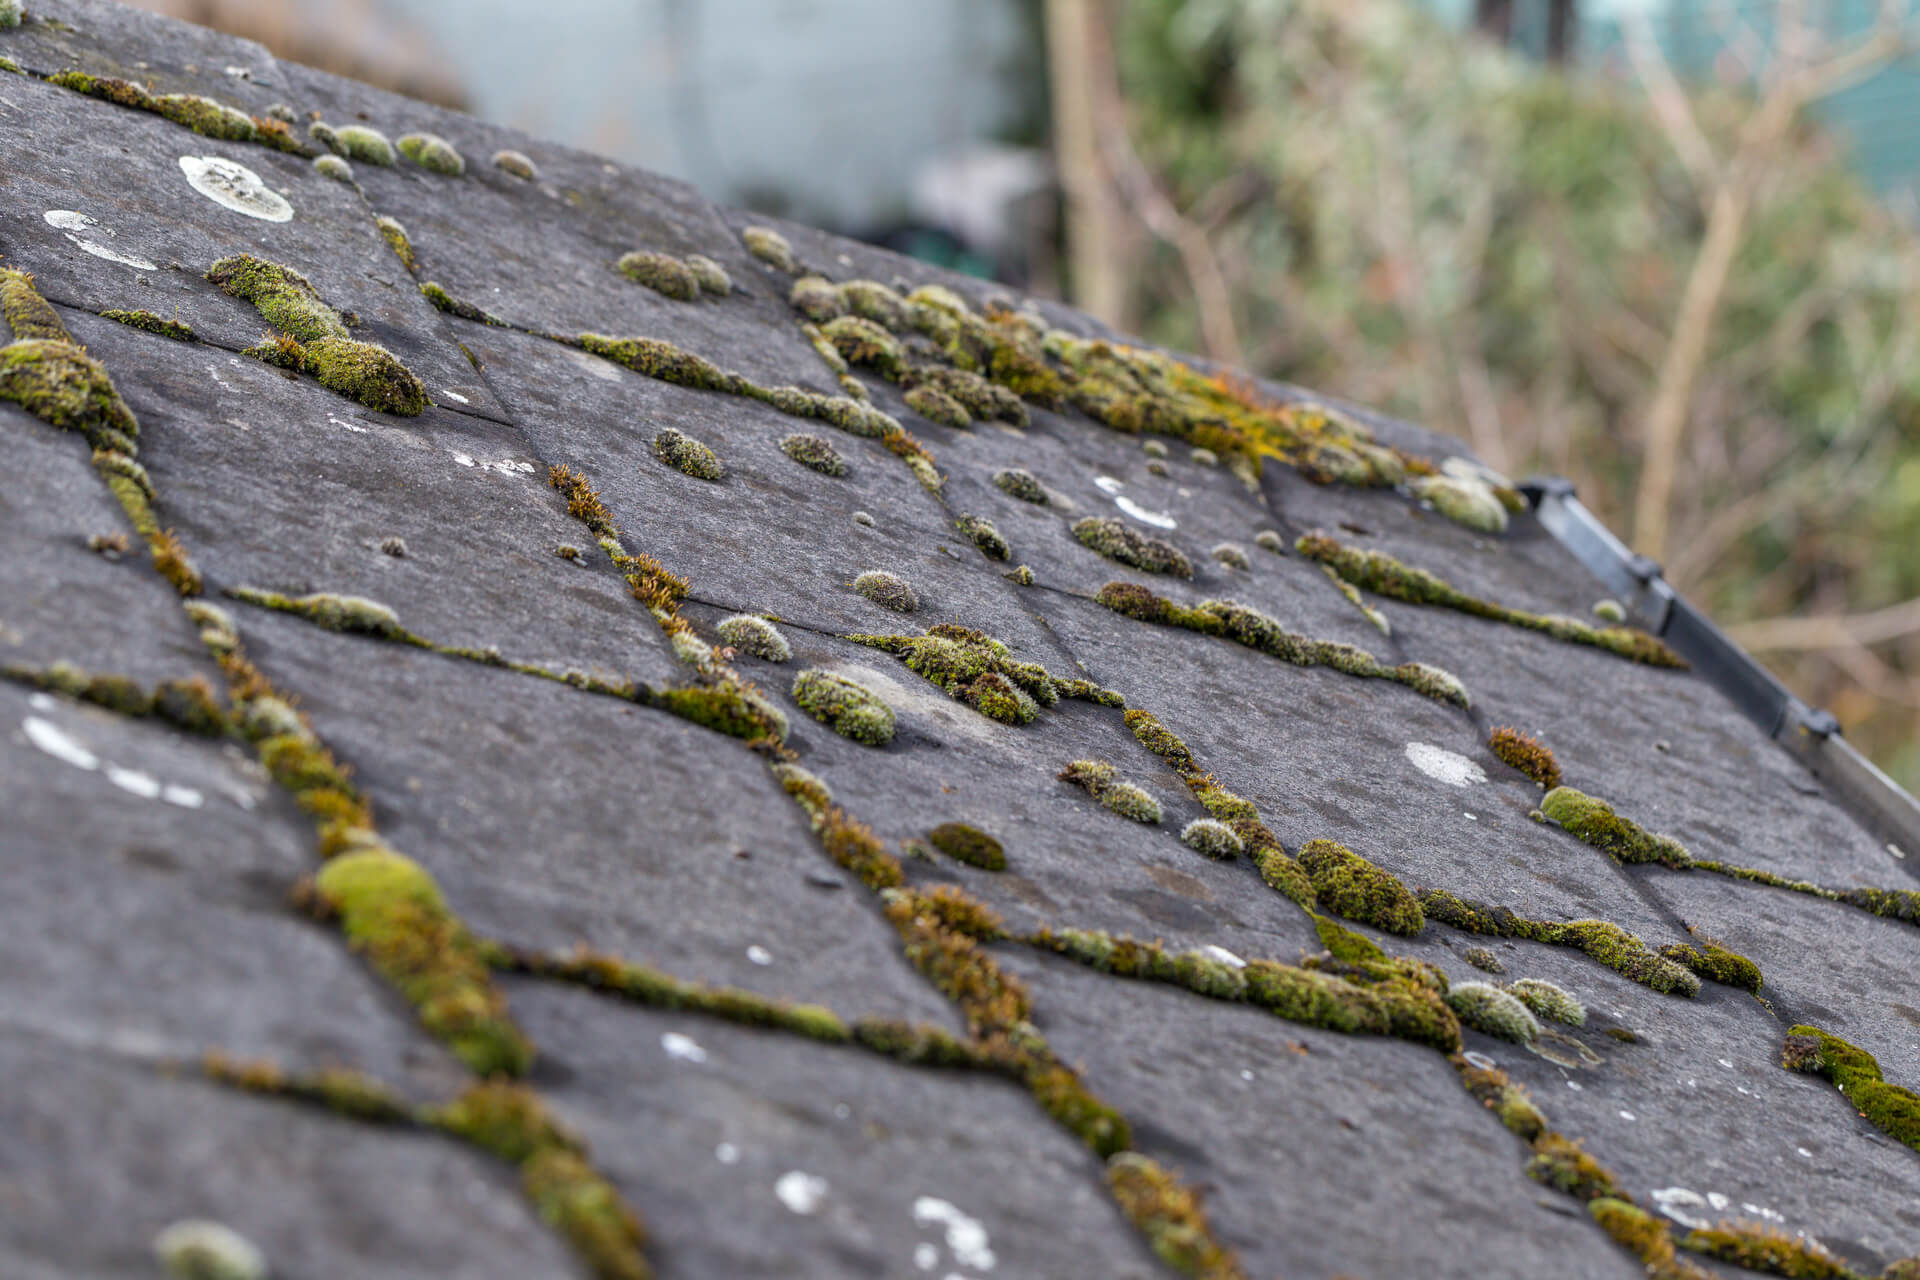 Moss Growing On A Roof In Dallas-Fort Worth